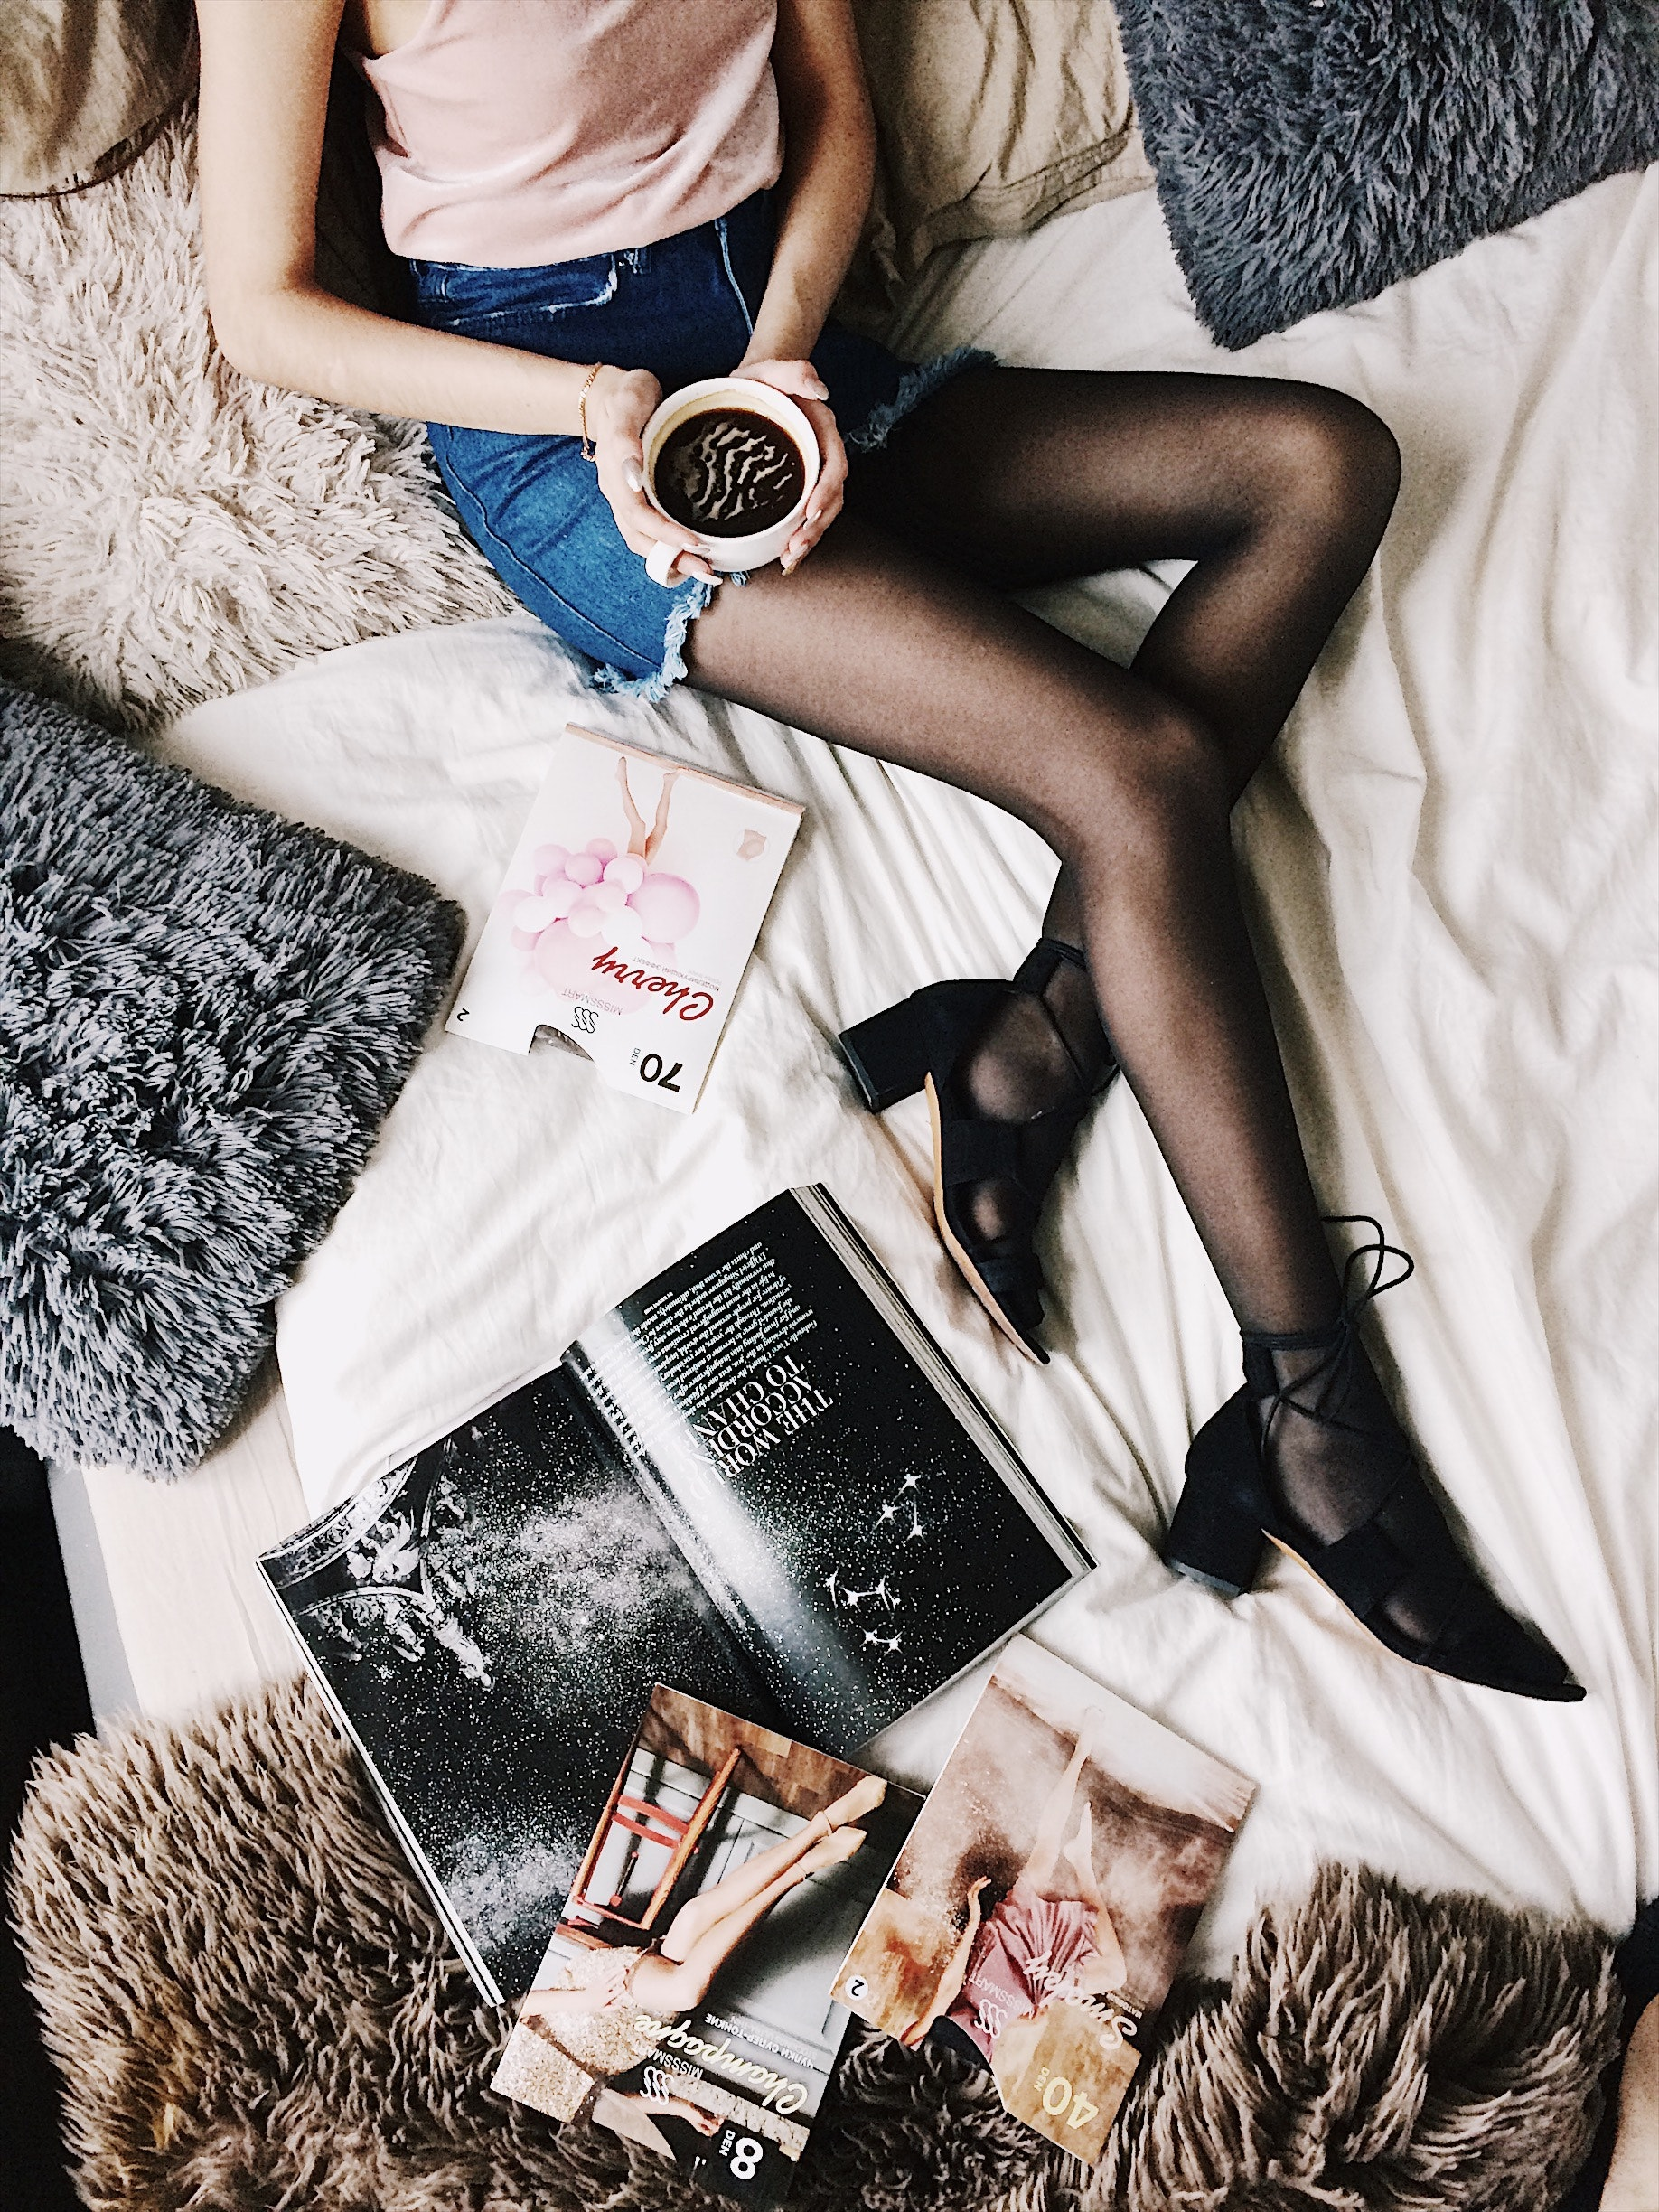 Flatlay Photography of a Woman Holding White Mug With Black Liquid While Lying on a Bed Surrounded by Fur Pillows and Magazines, Magazine, Young, Woman, Wear, HQ Photo